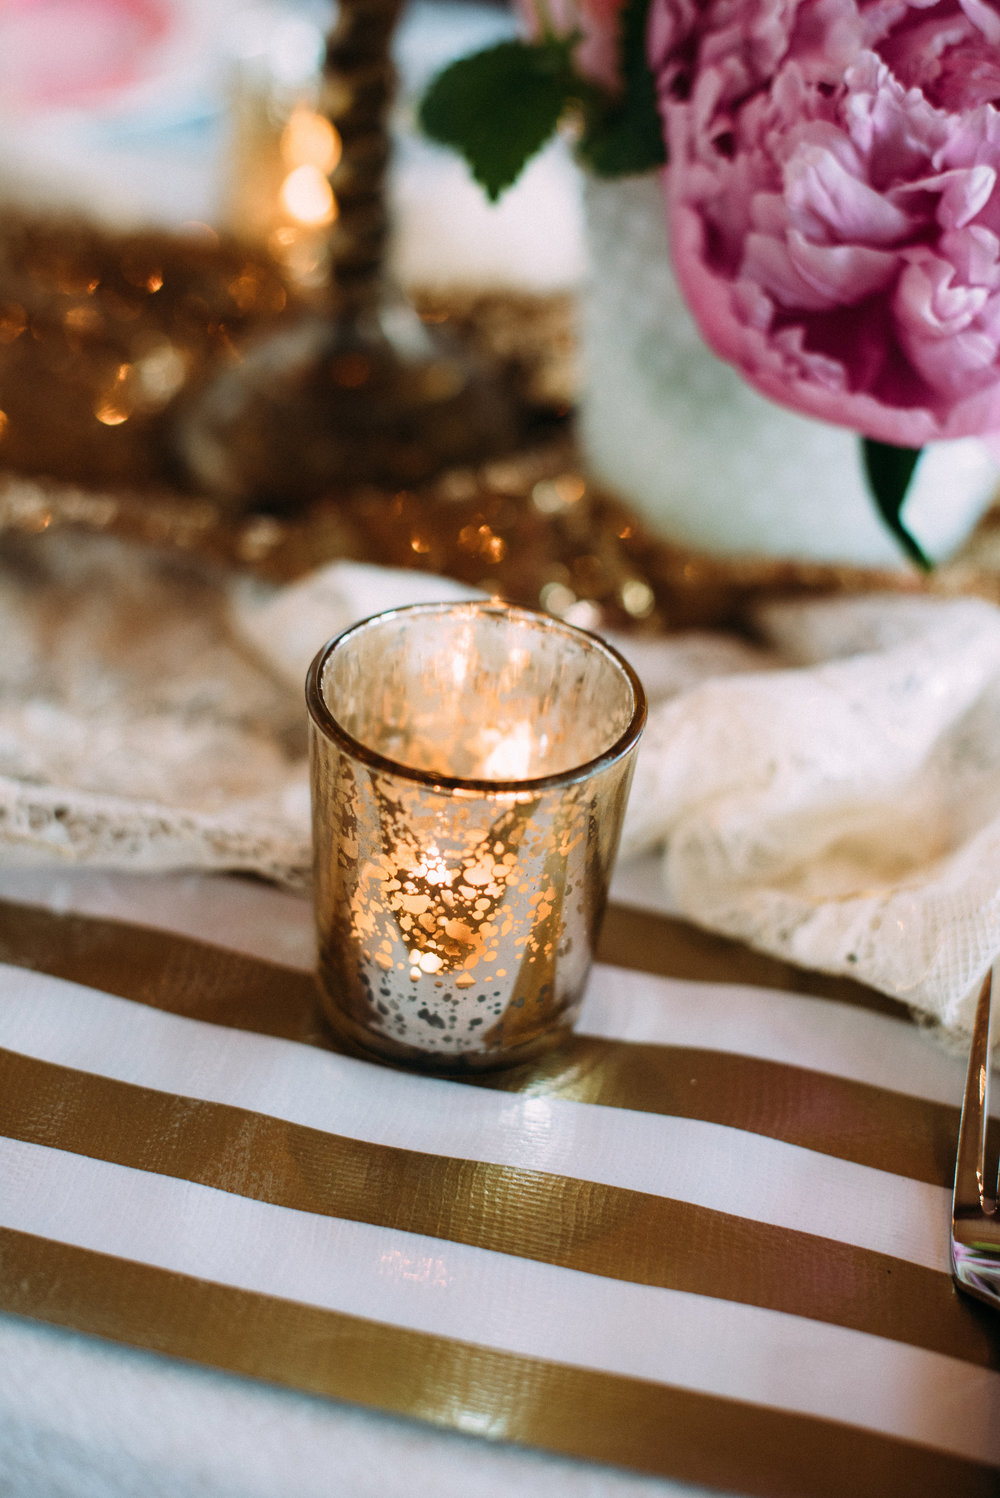 Create loose groupings of threes down the table, pairing flowers, candles and decor together.